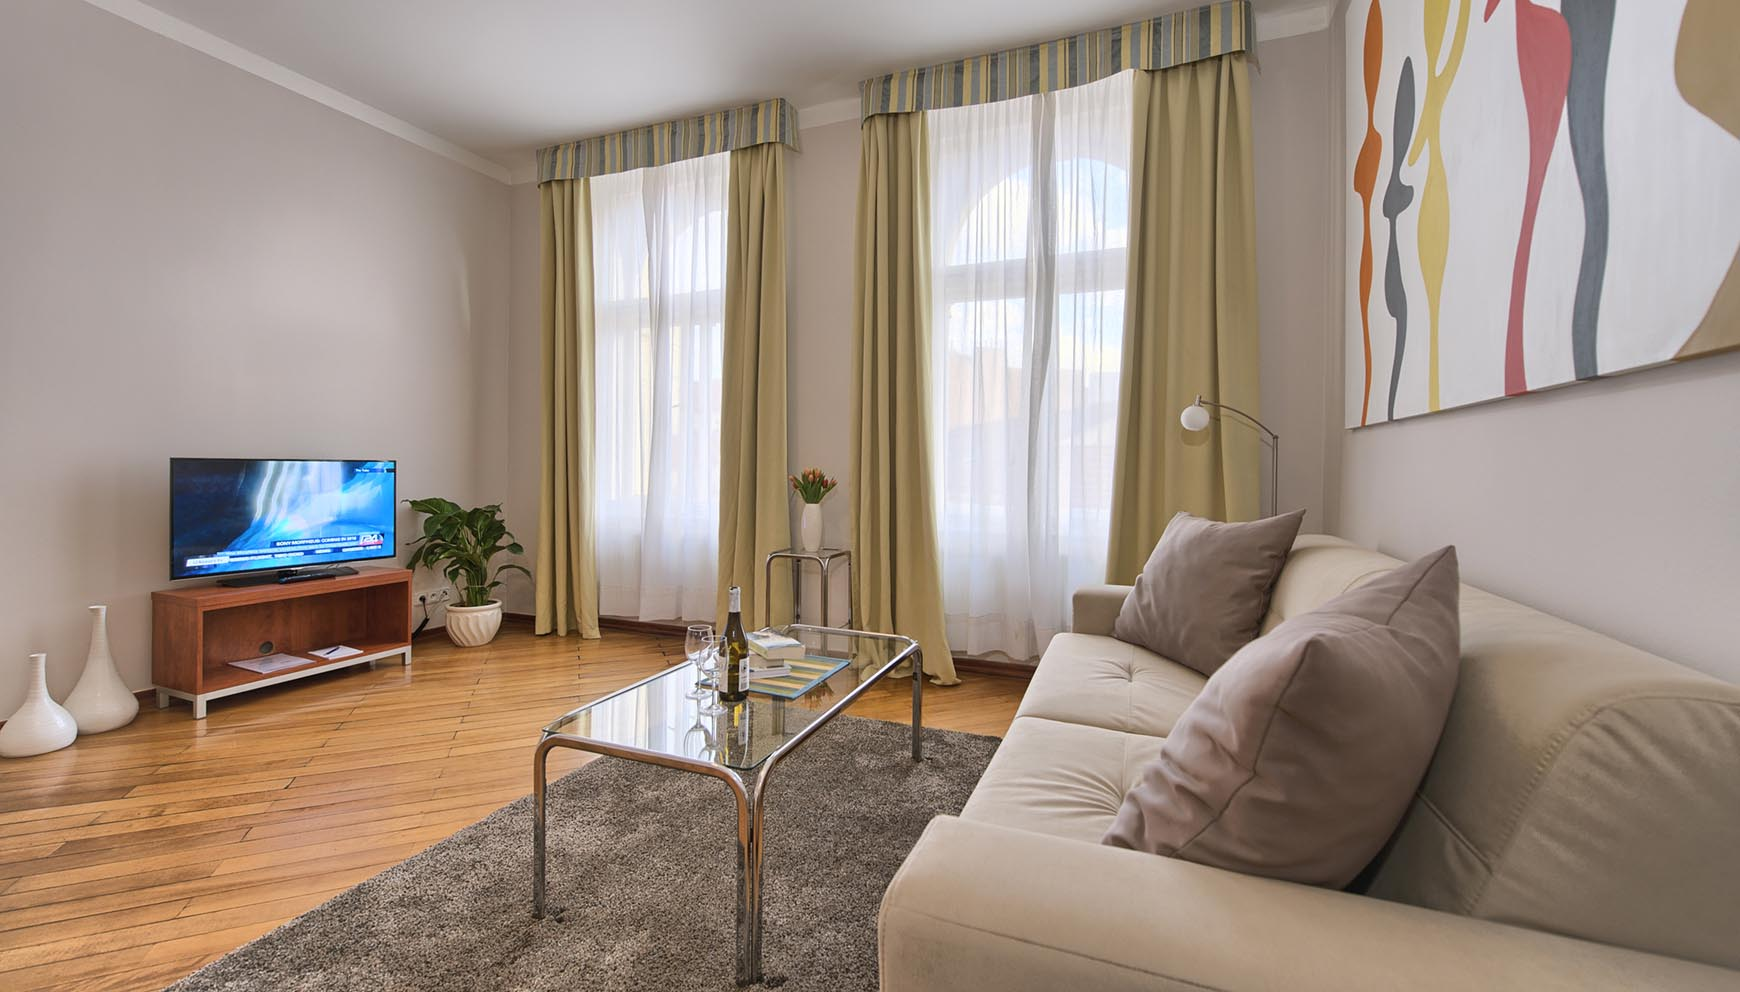 Living Room In A A One Bedroom Apartment Type 3 In Residence Masna